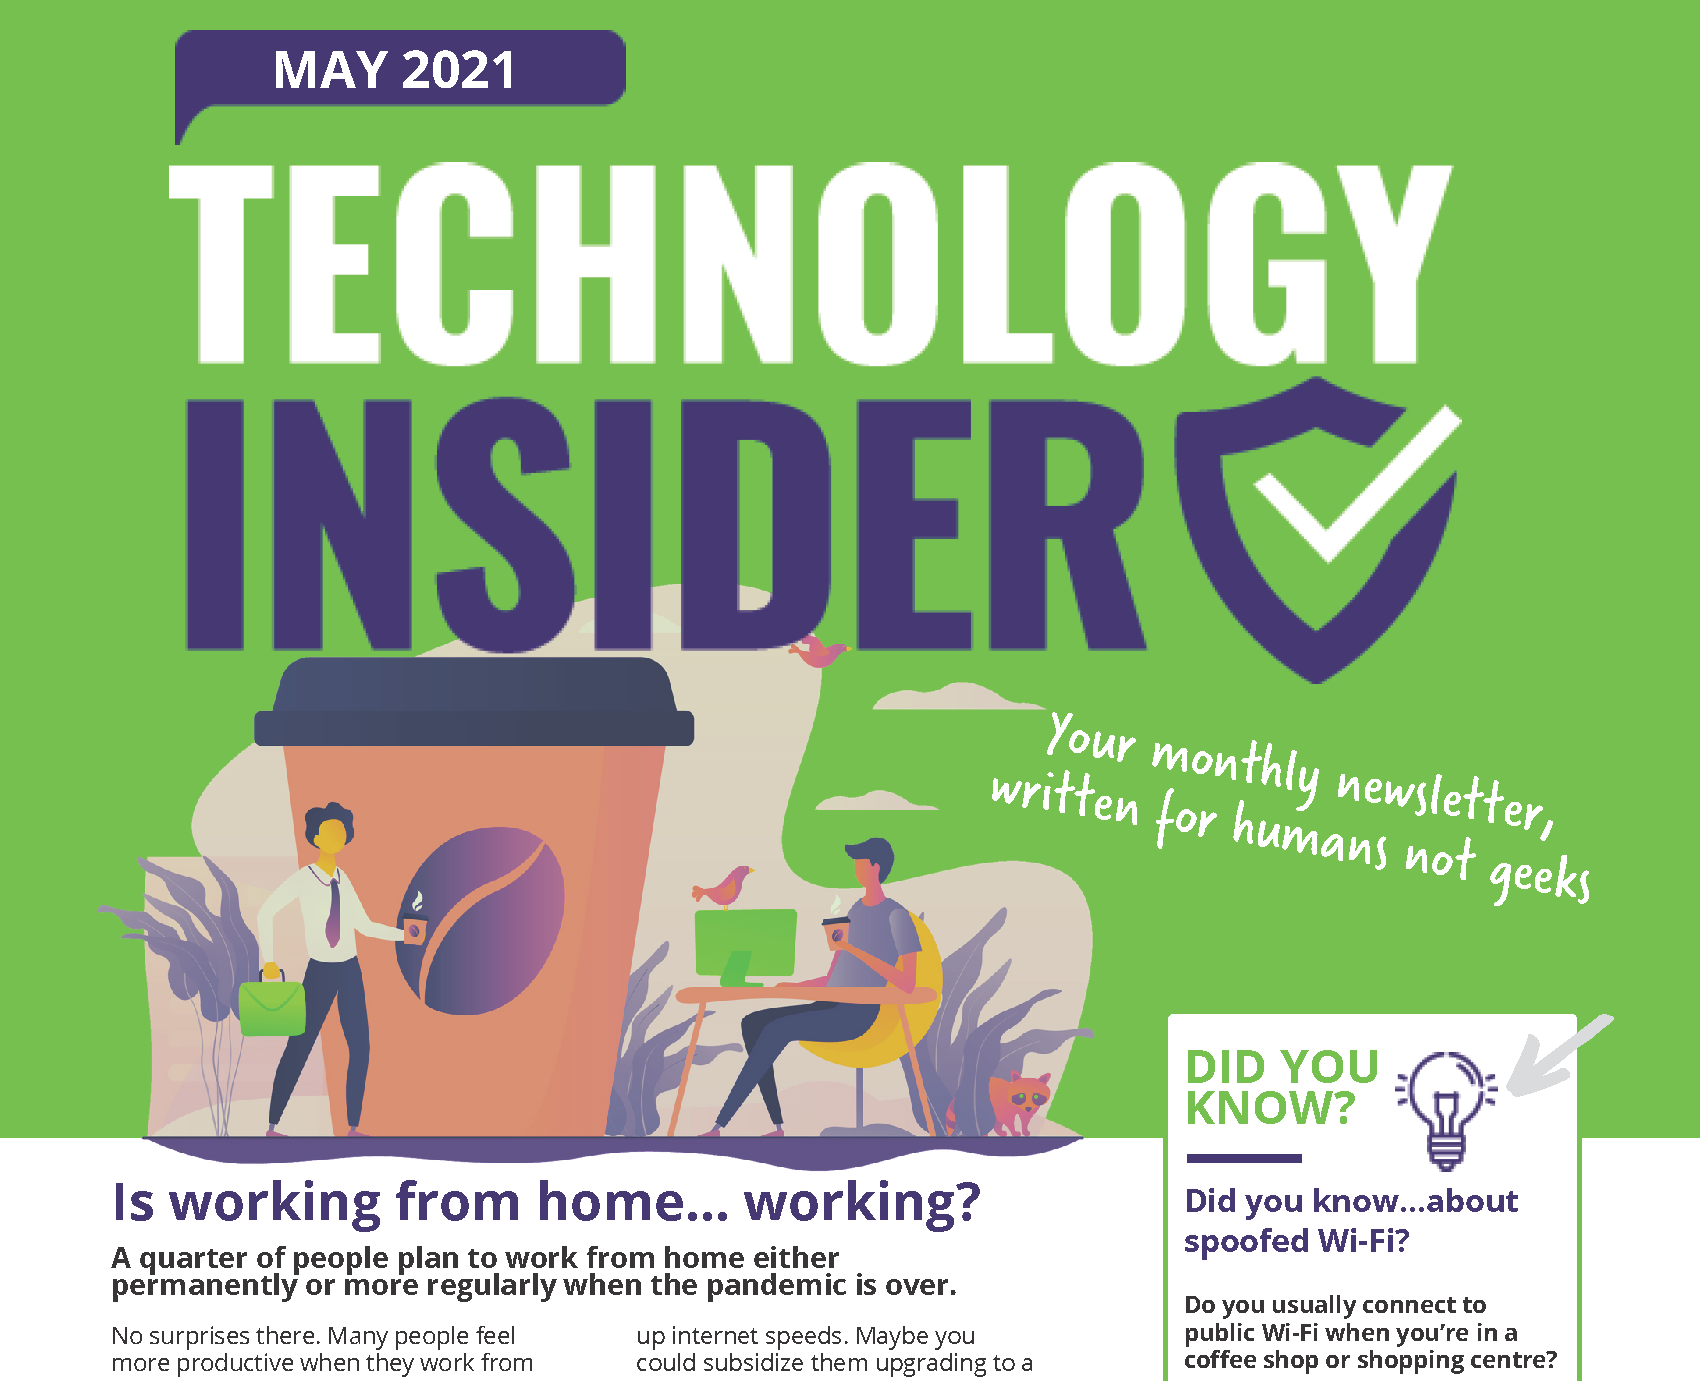 May 2021 Technology Insider